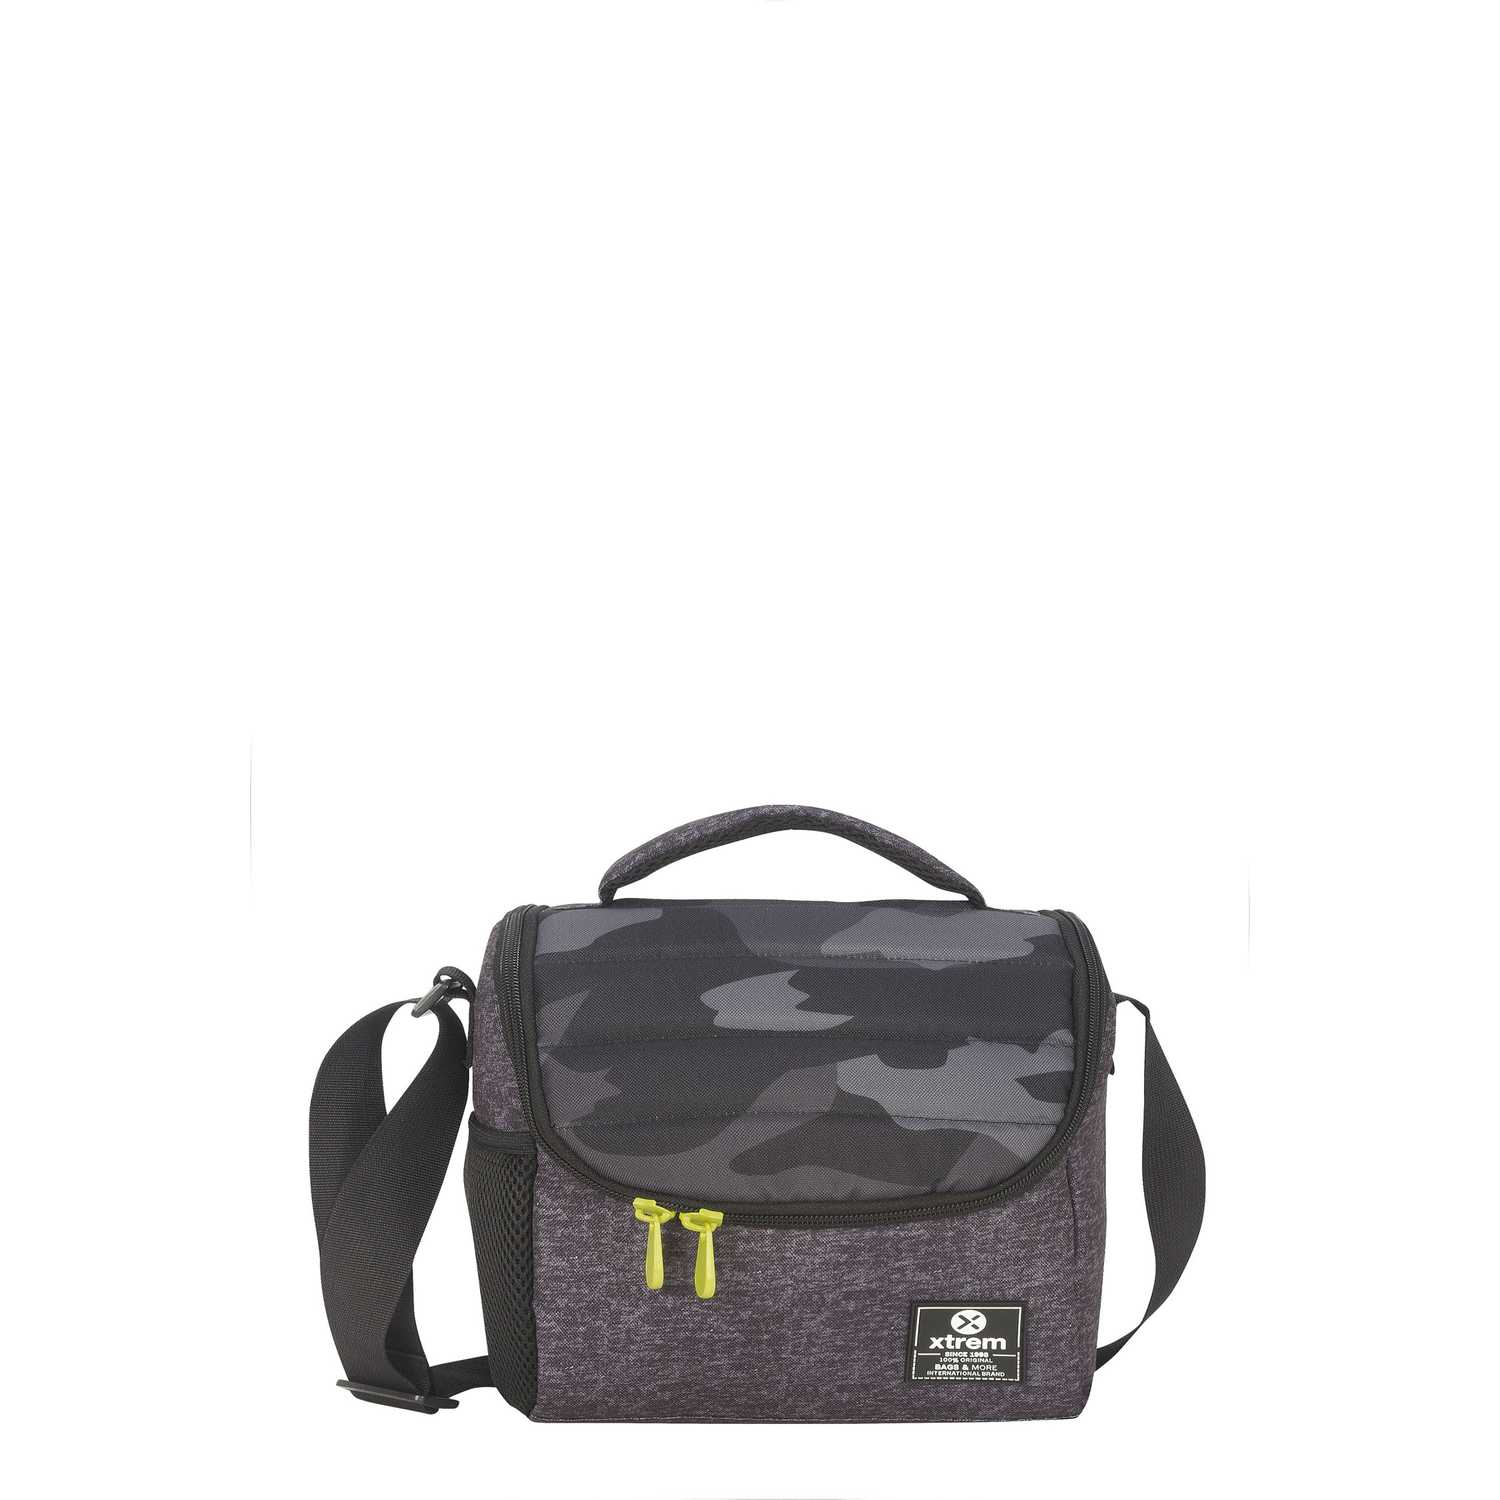 Xtrem lunch bag black camouflage break 846 Gris Loncheras